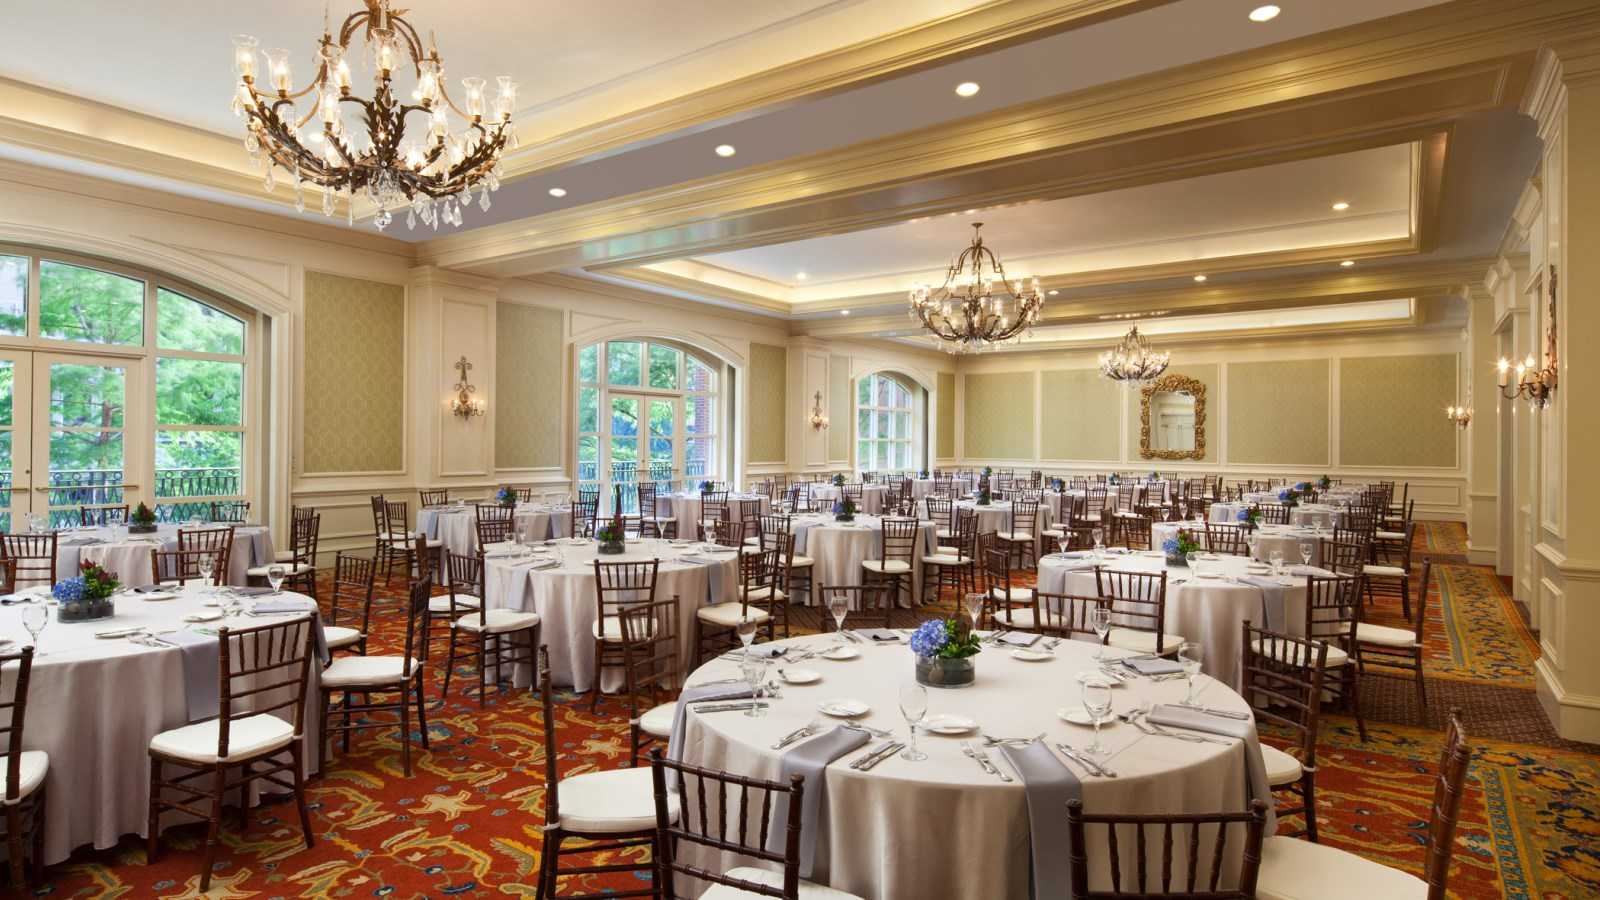 San Antonio Wedding Venues - Ballroom Reception